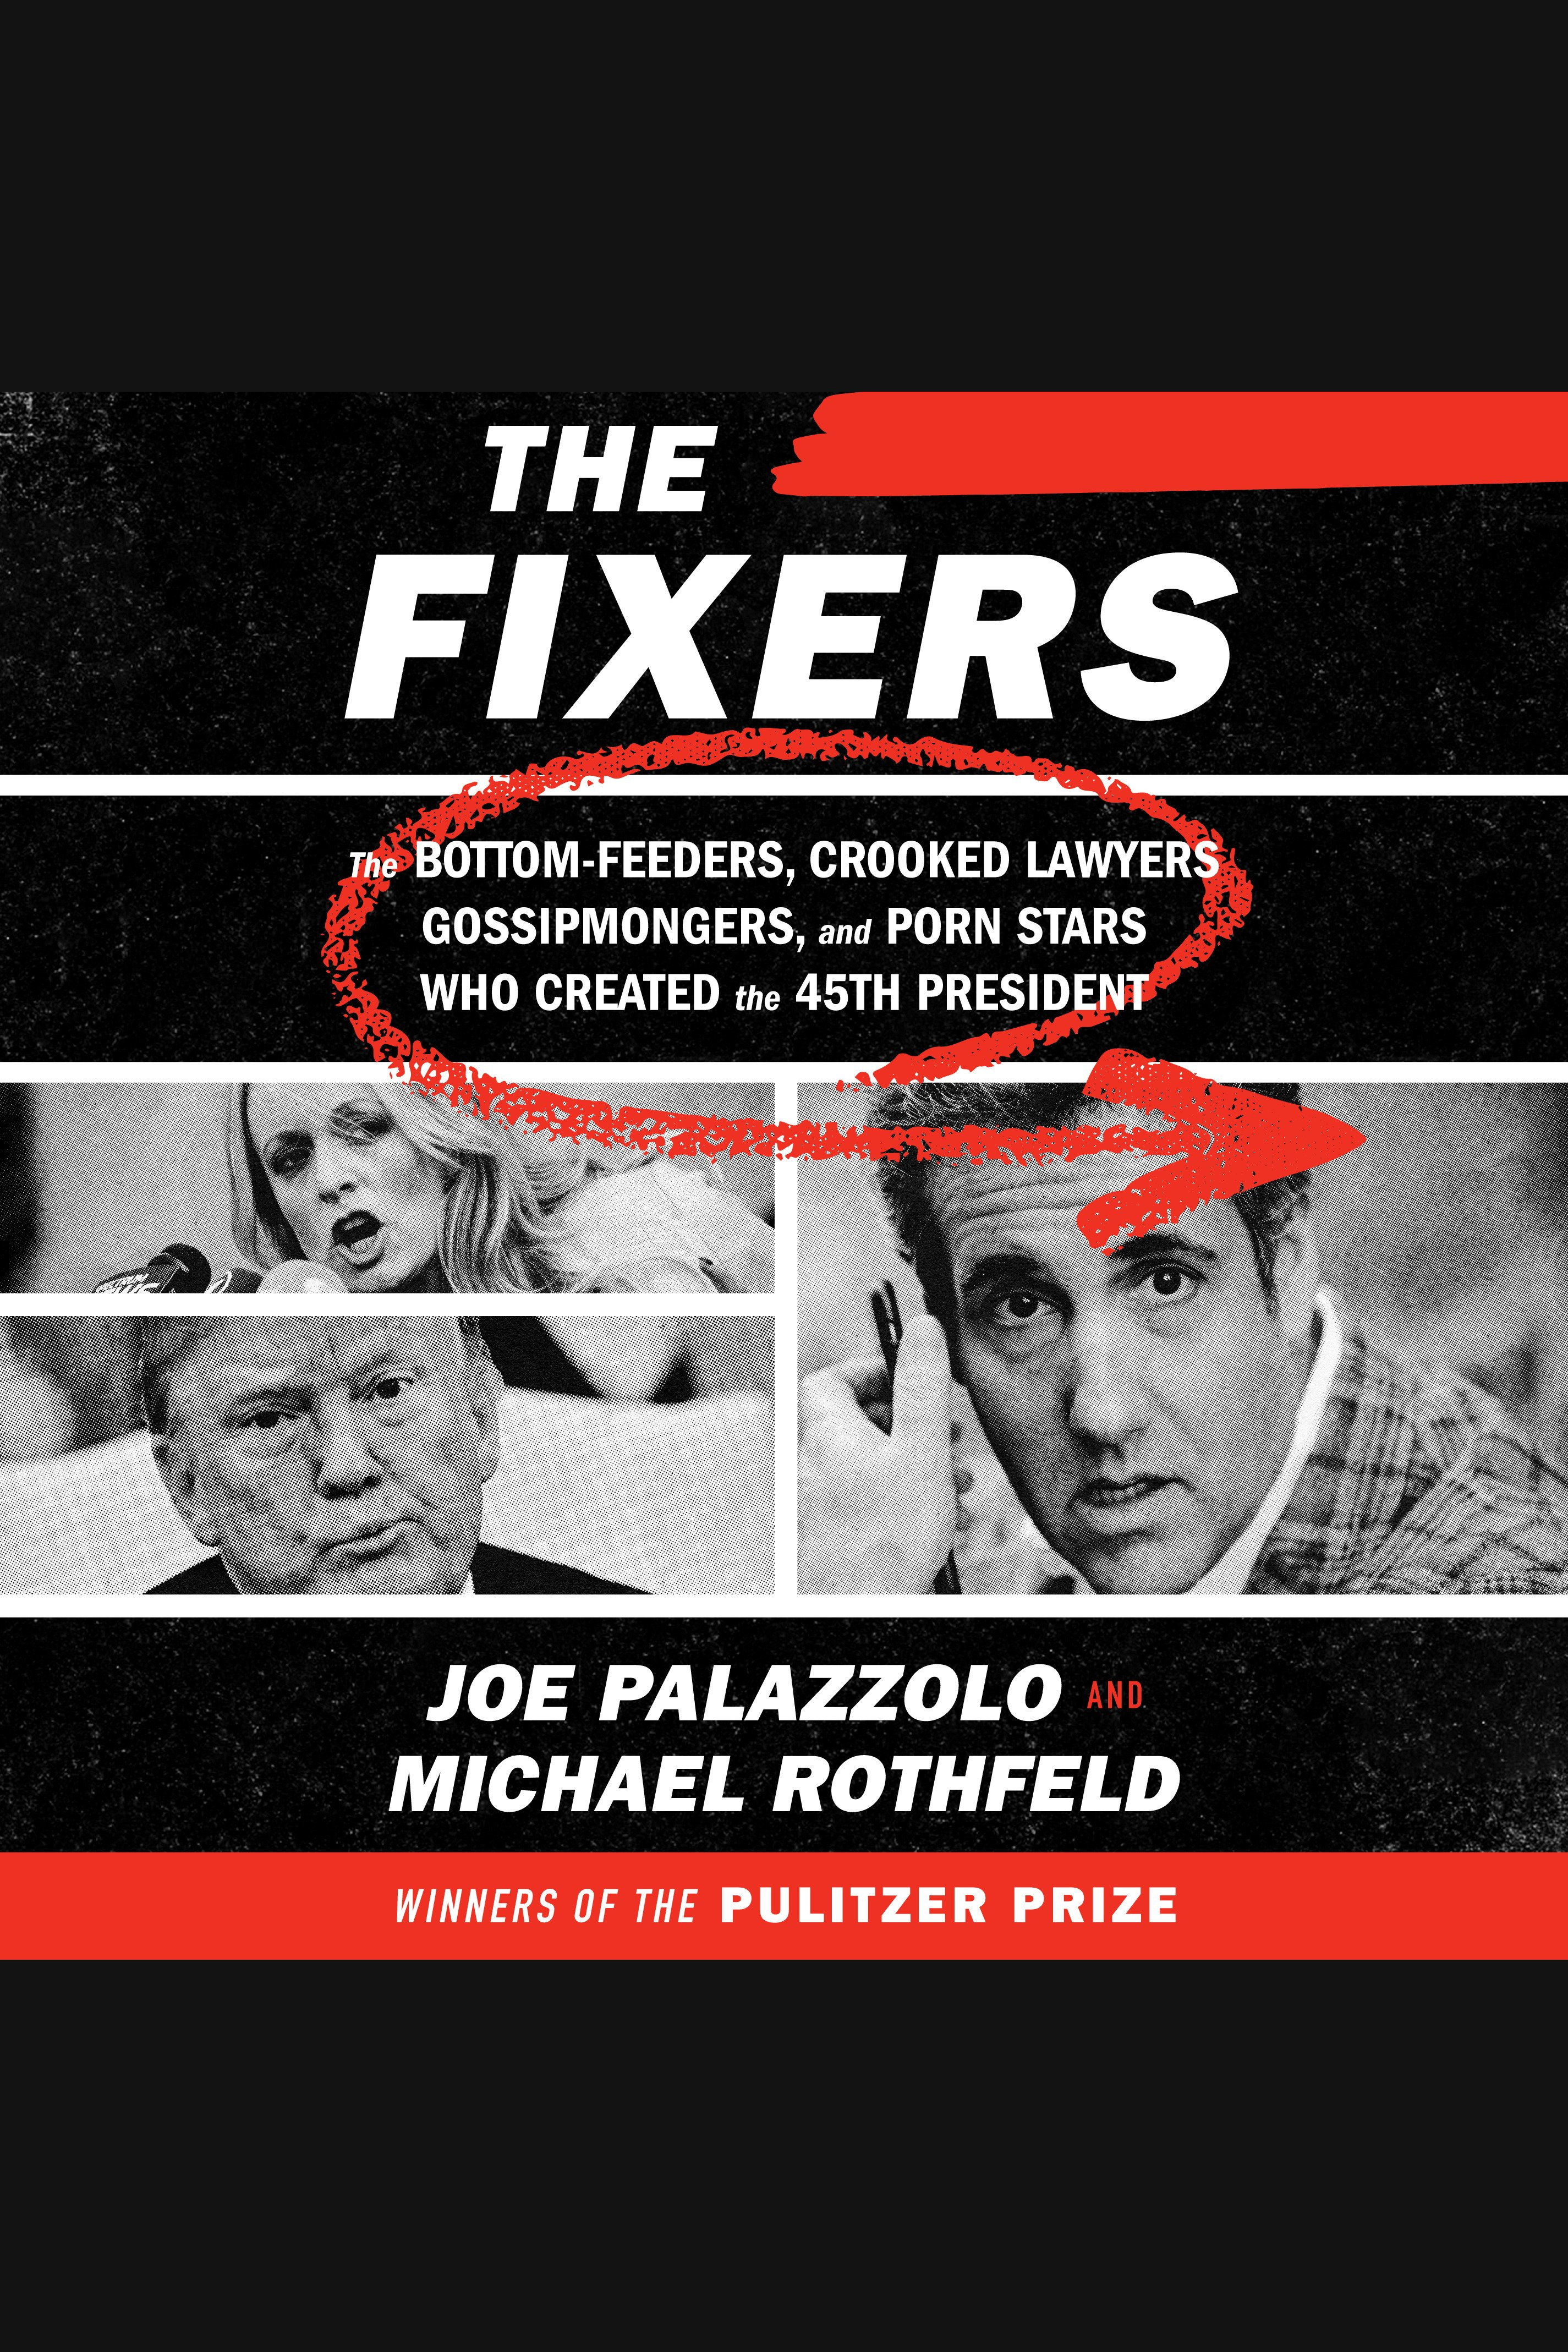 Fixers, The The Bottom-Feeders, Crooked Lawyers, Gossipmongers, and Porn Stars Who Created the 45th President